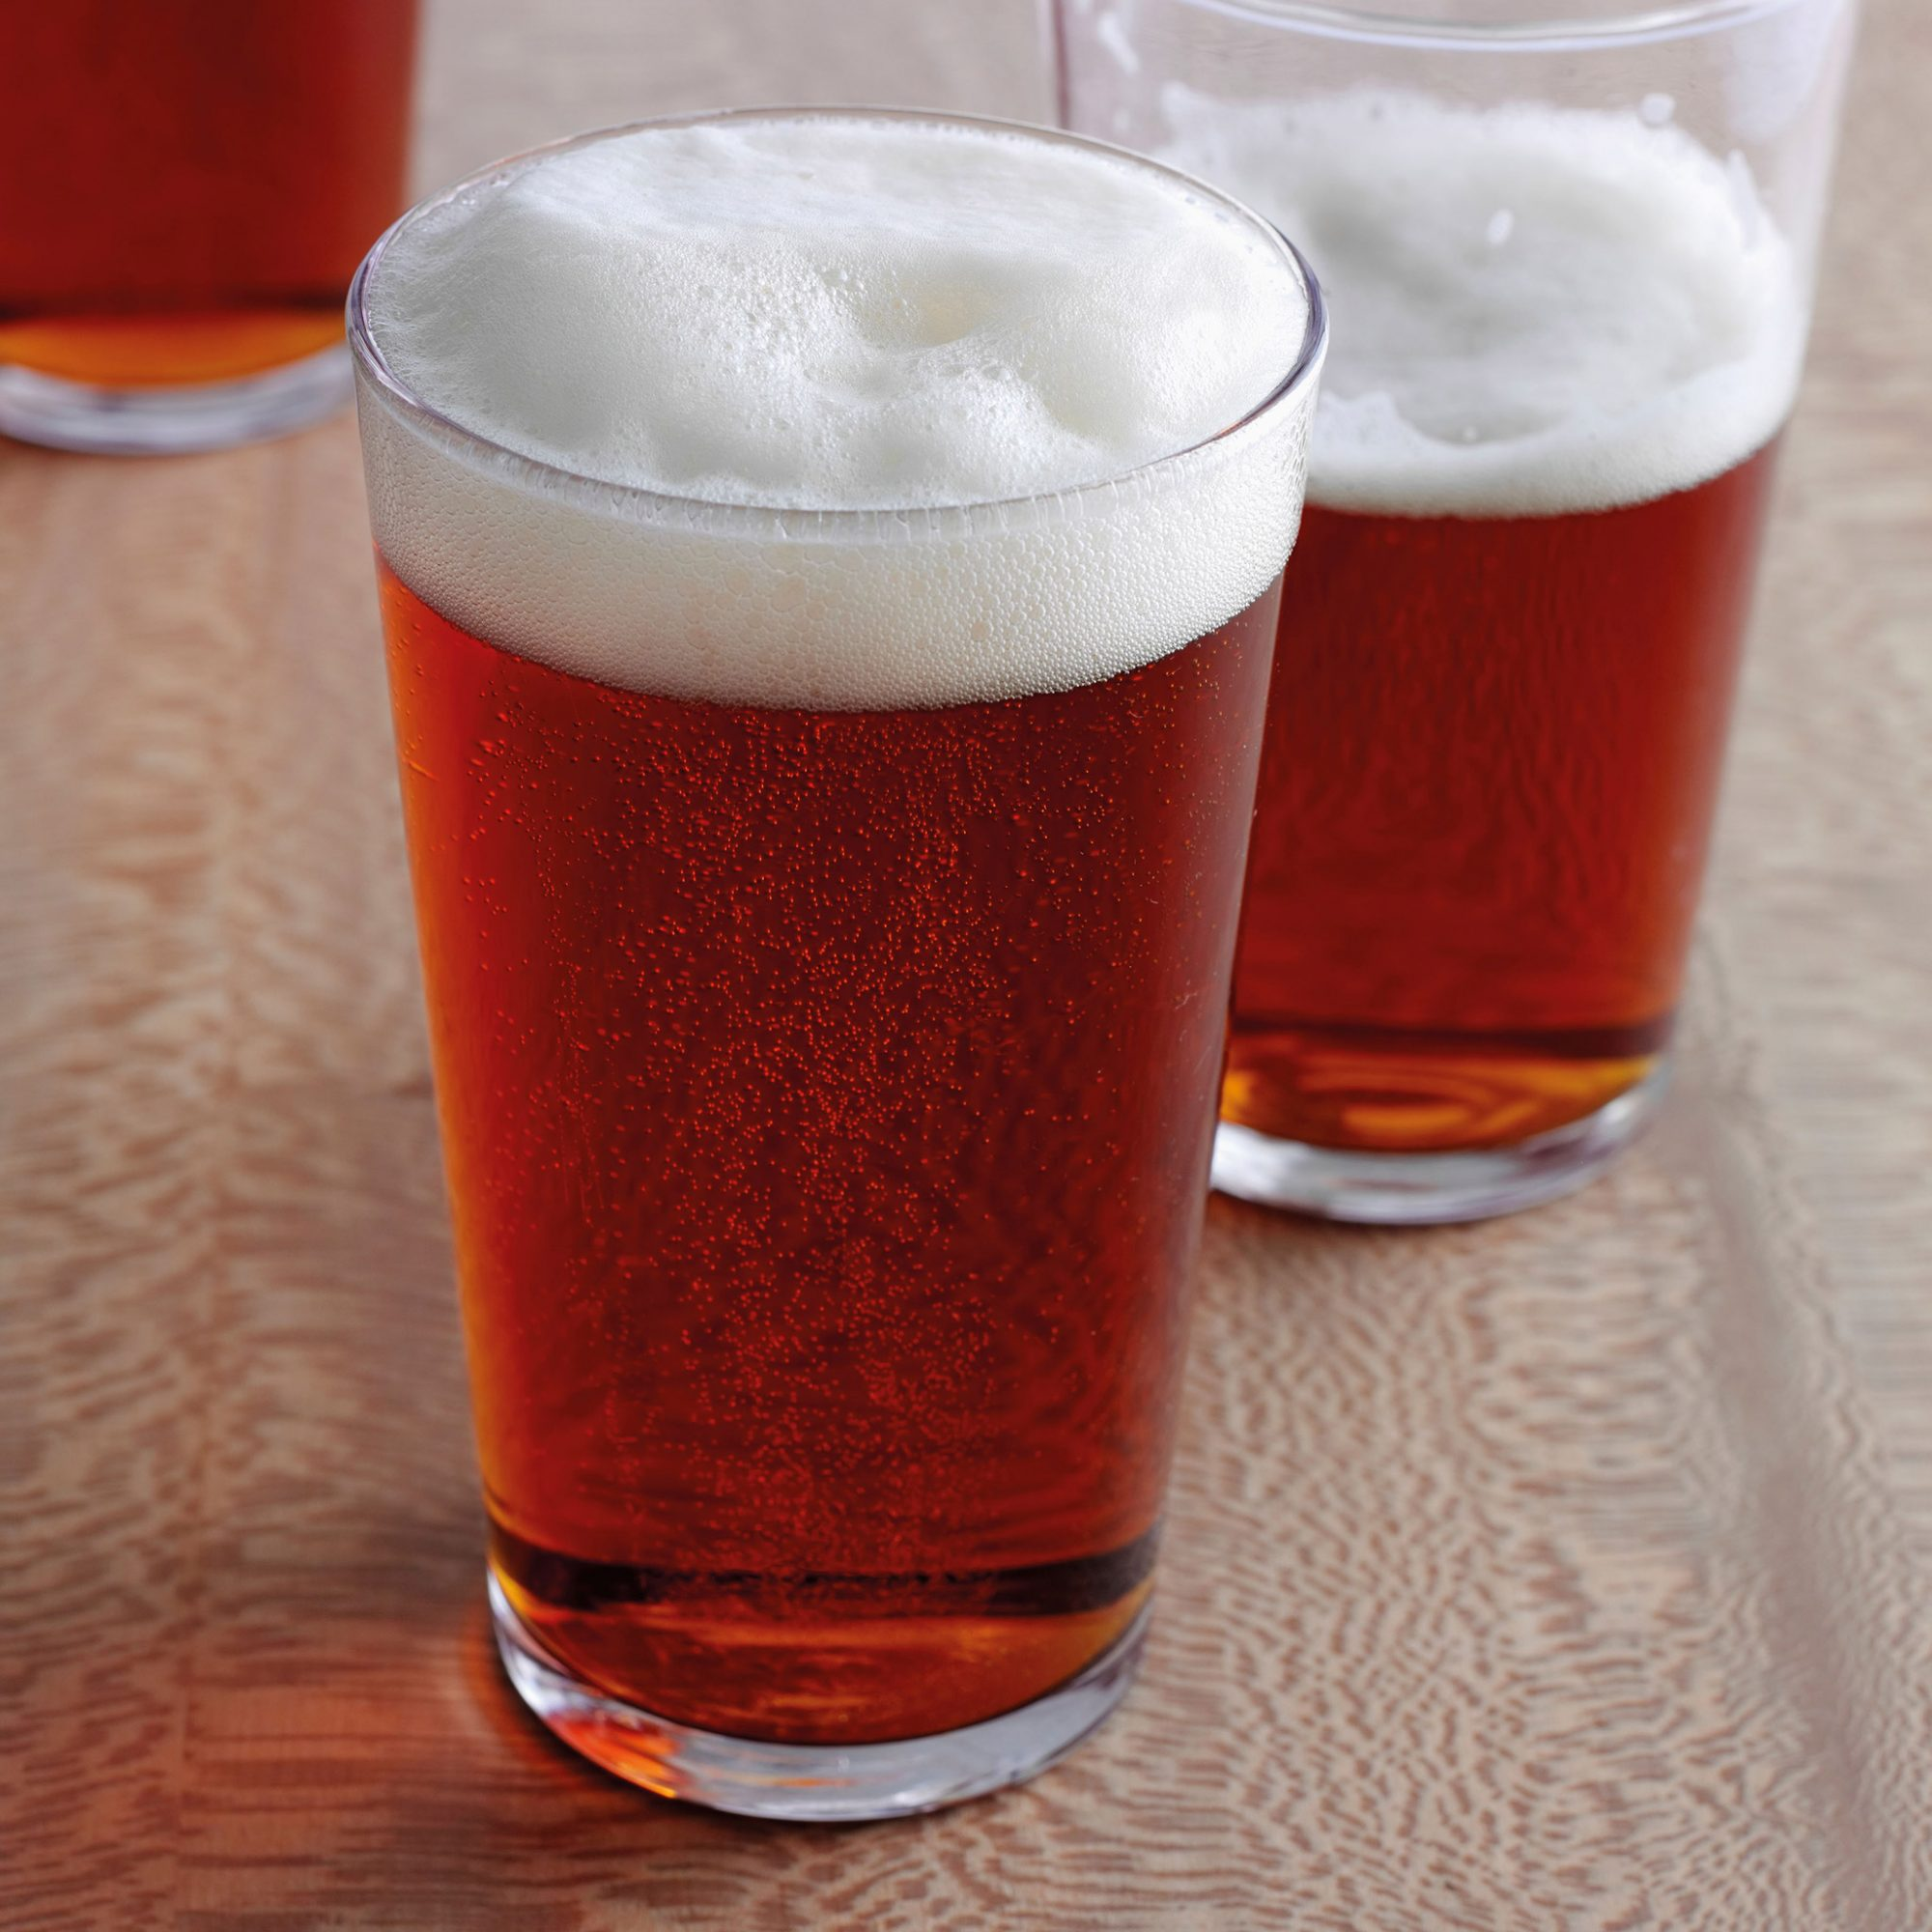 A Beer a Day May Help Men Make Babies